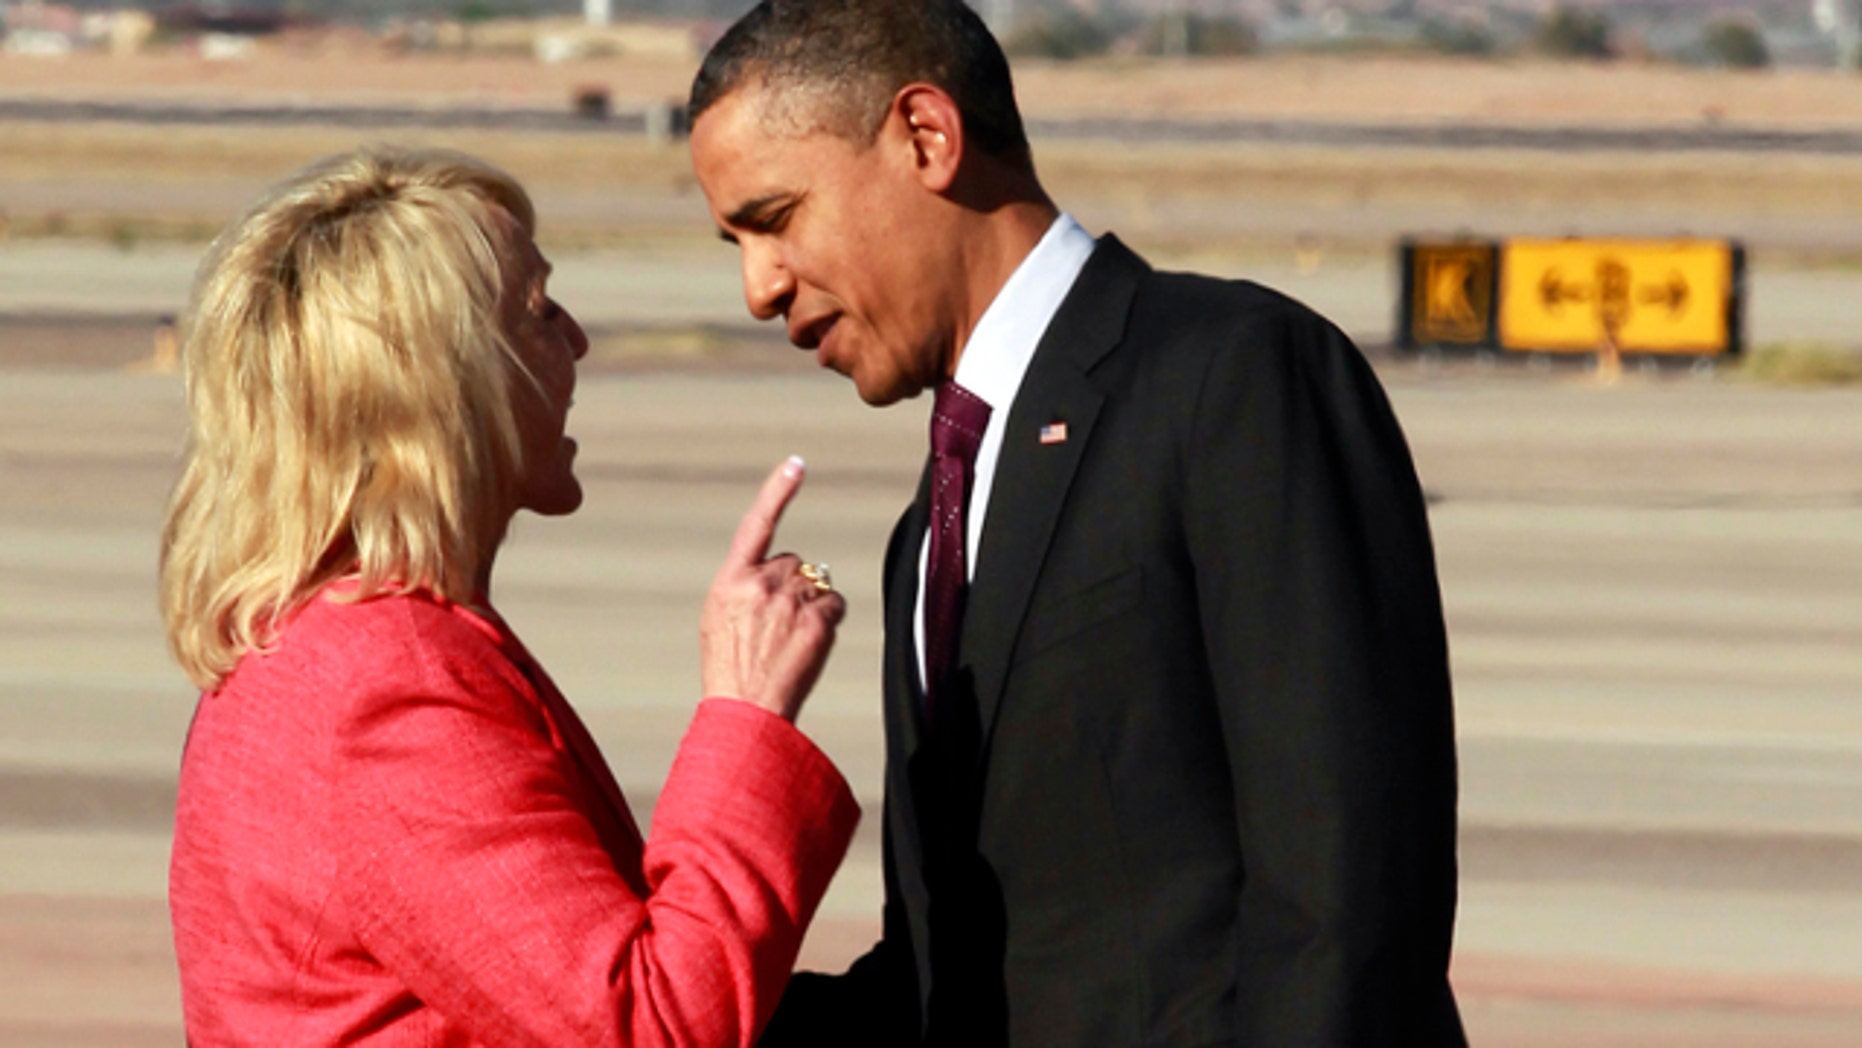 Jan. 25, 2012: Arizona Gov. Jan Brewer points at President Obama after he arrived at Phoenix-Mesa Gateway Airport.